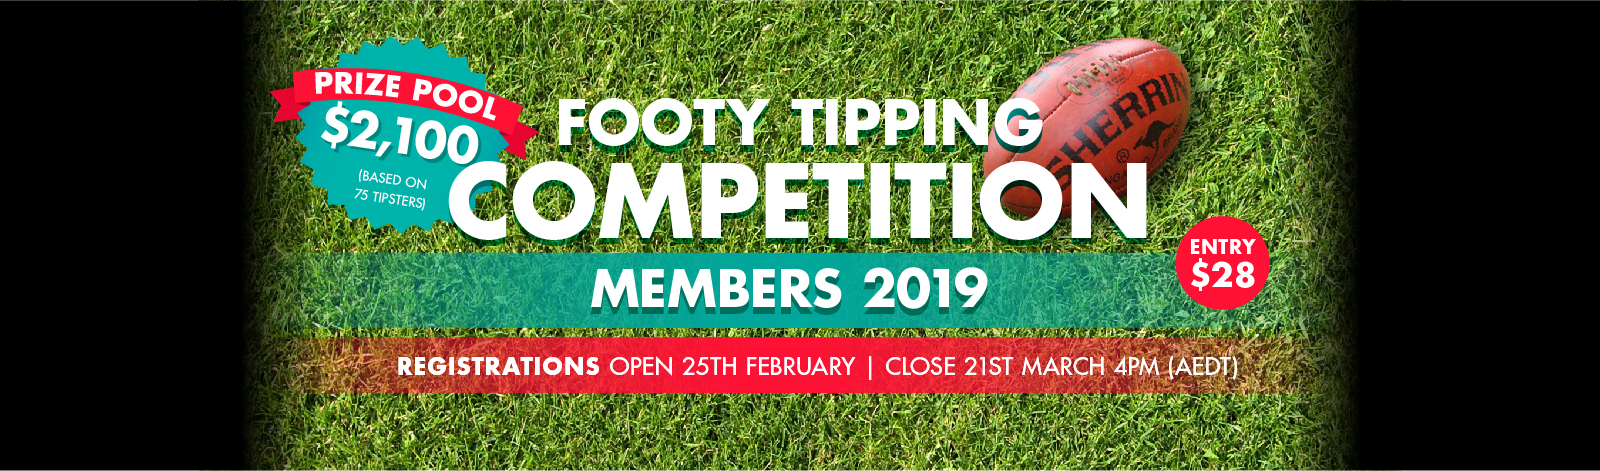 CC_HP_Hero_FootyTipping_0219_01